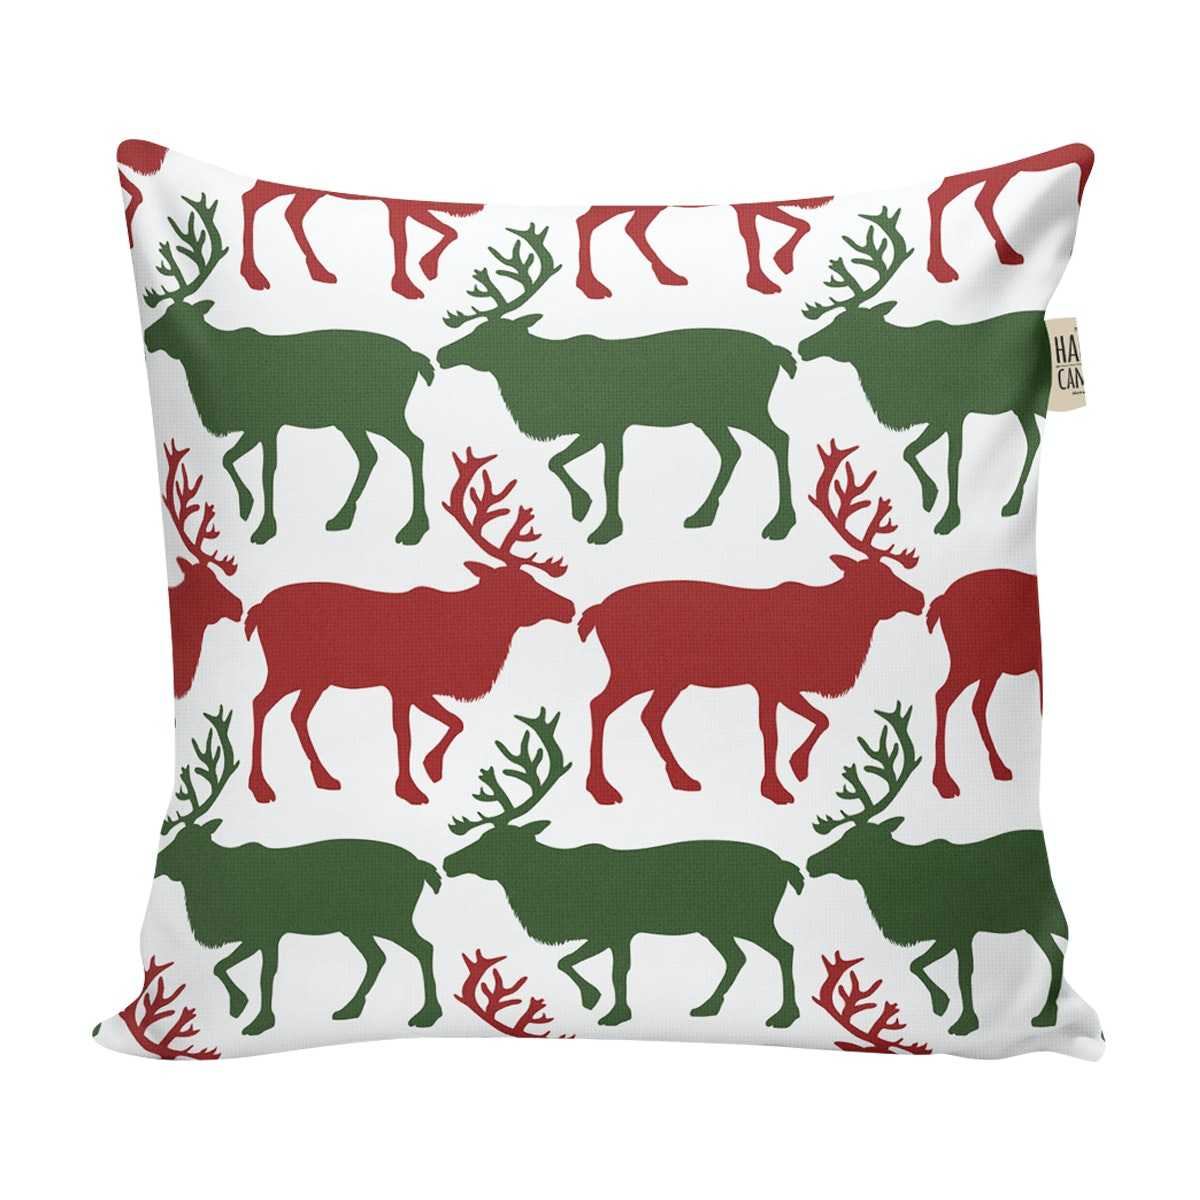 The Happy Camper Christmas Reindeer Cushion Cover 40x40cm